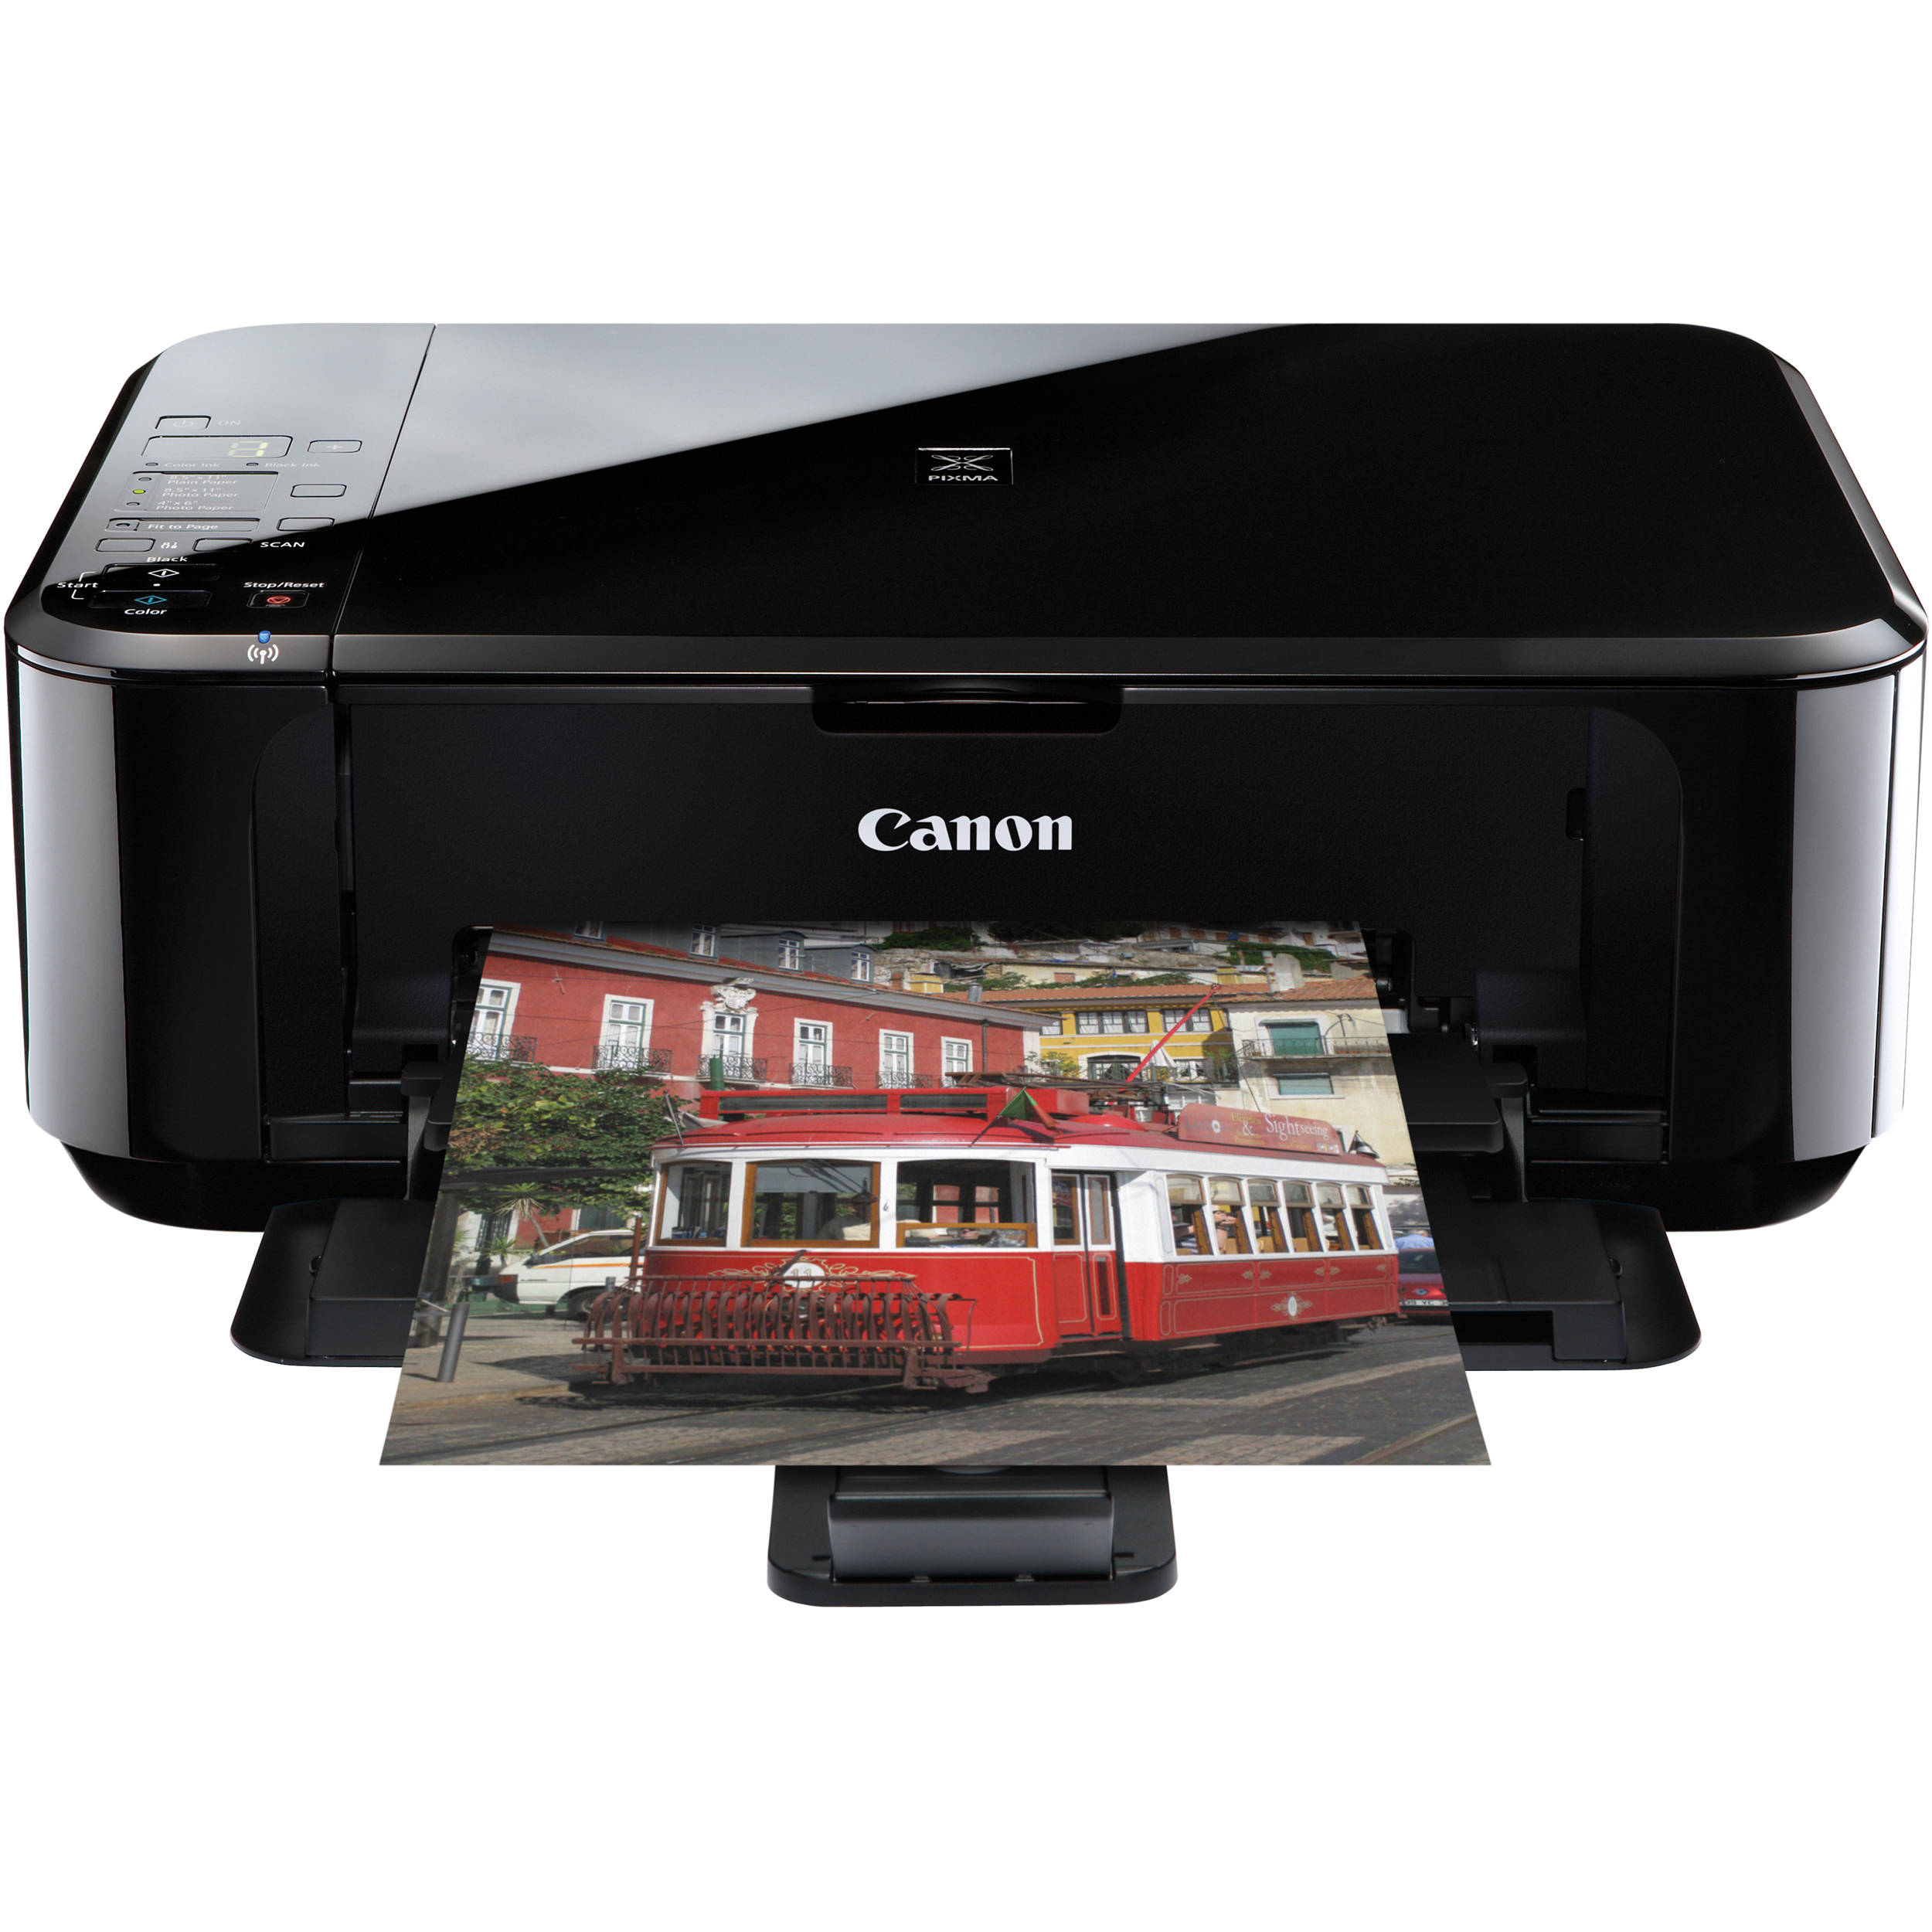 CANON MG3120 WINDOWS 7 X64 DRIVER